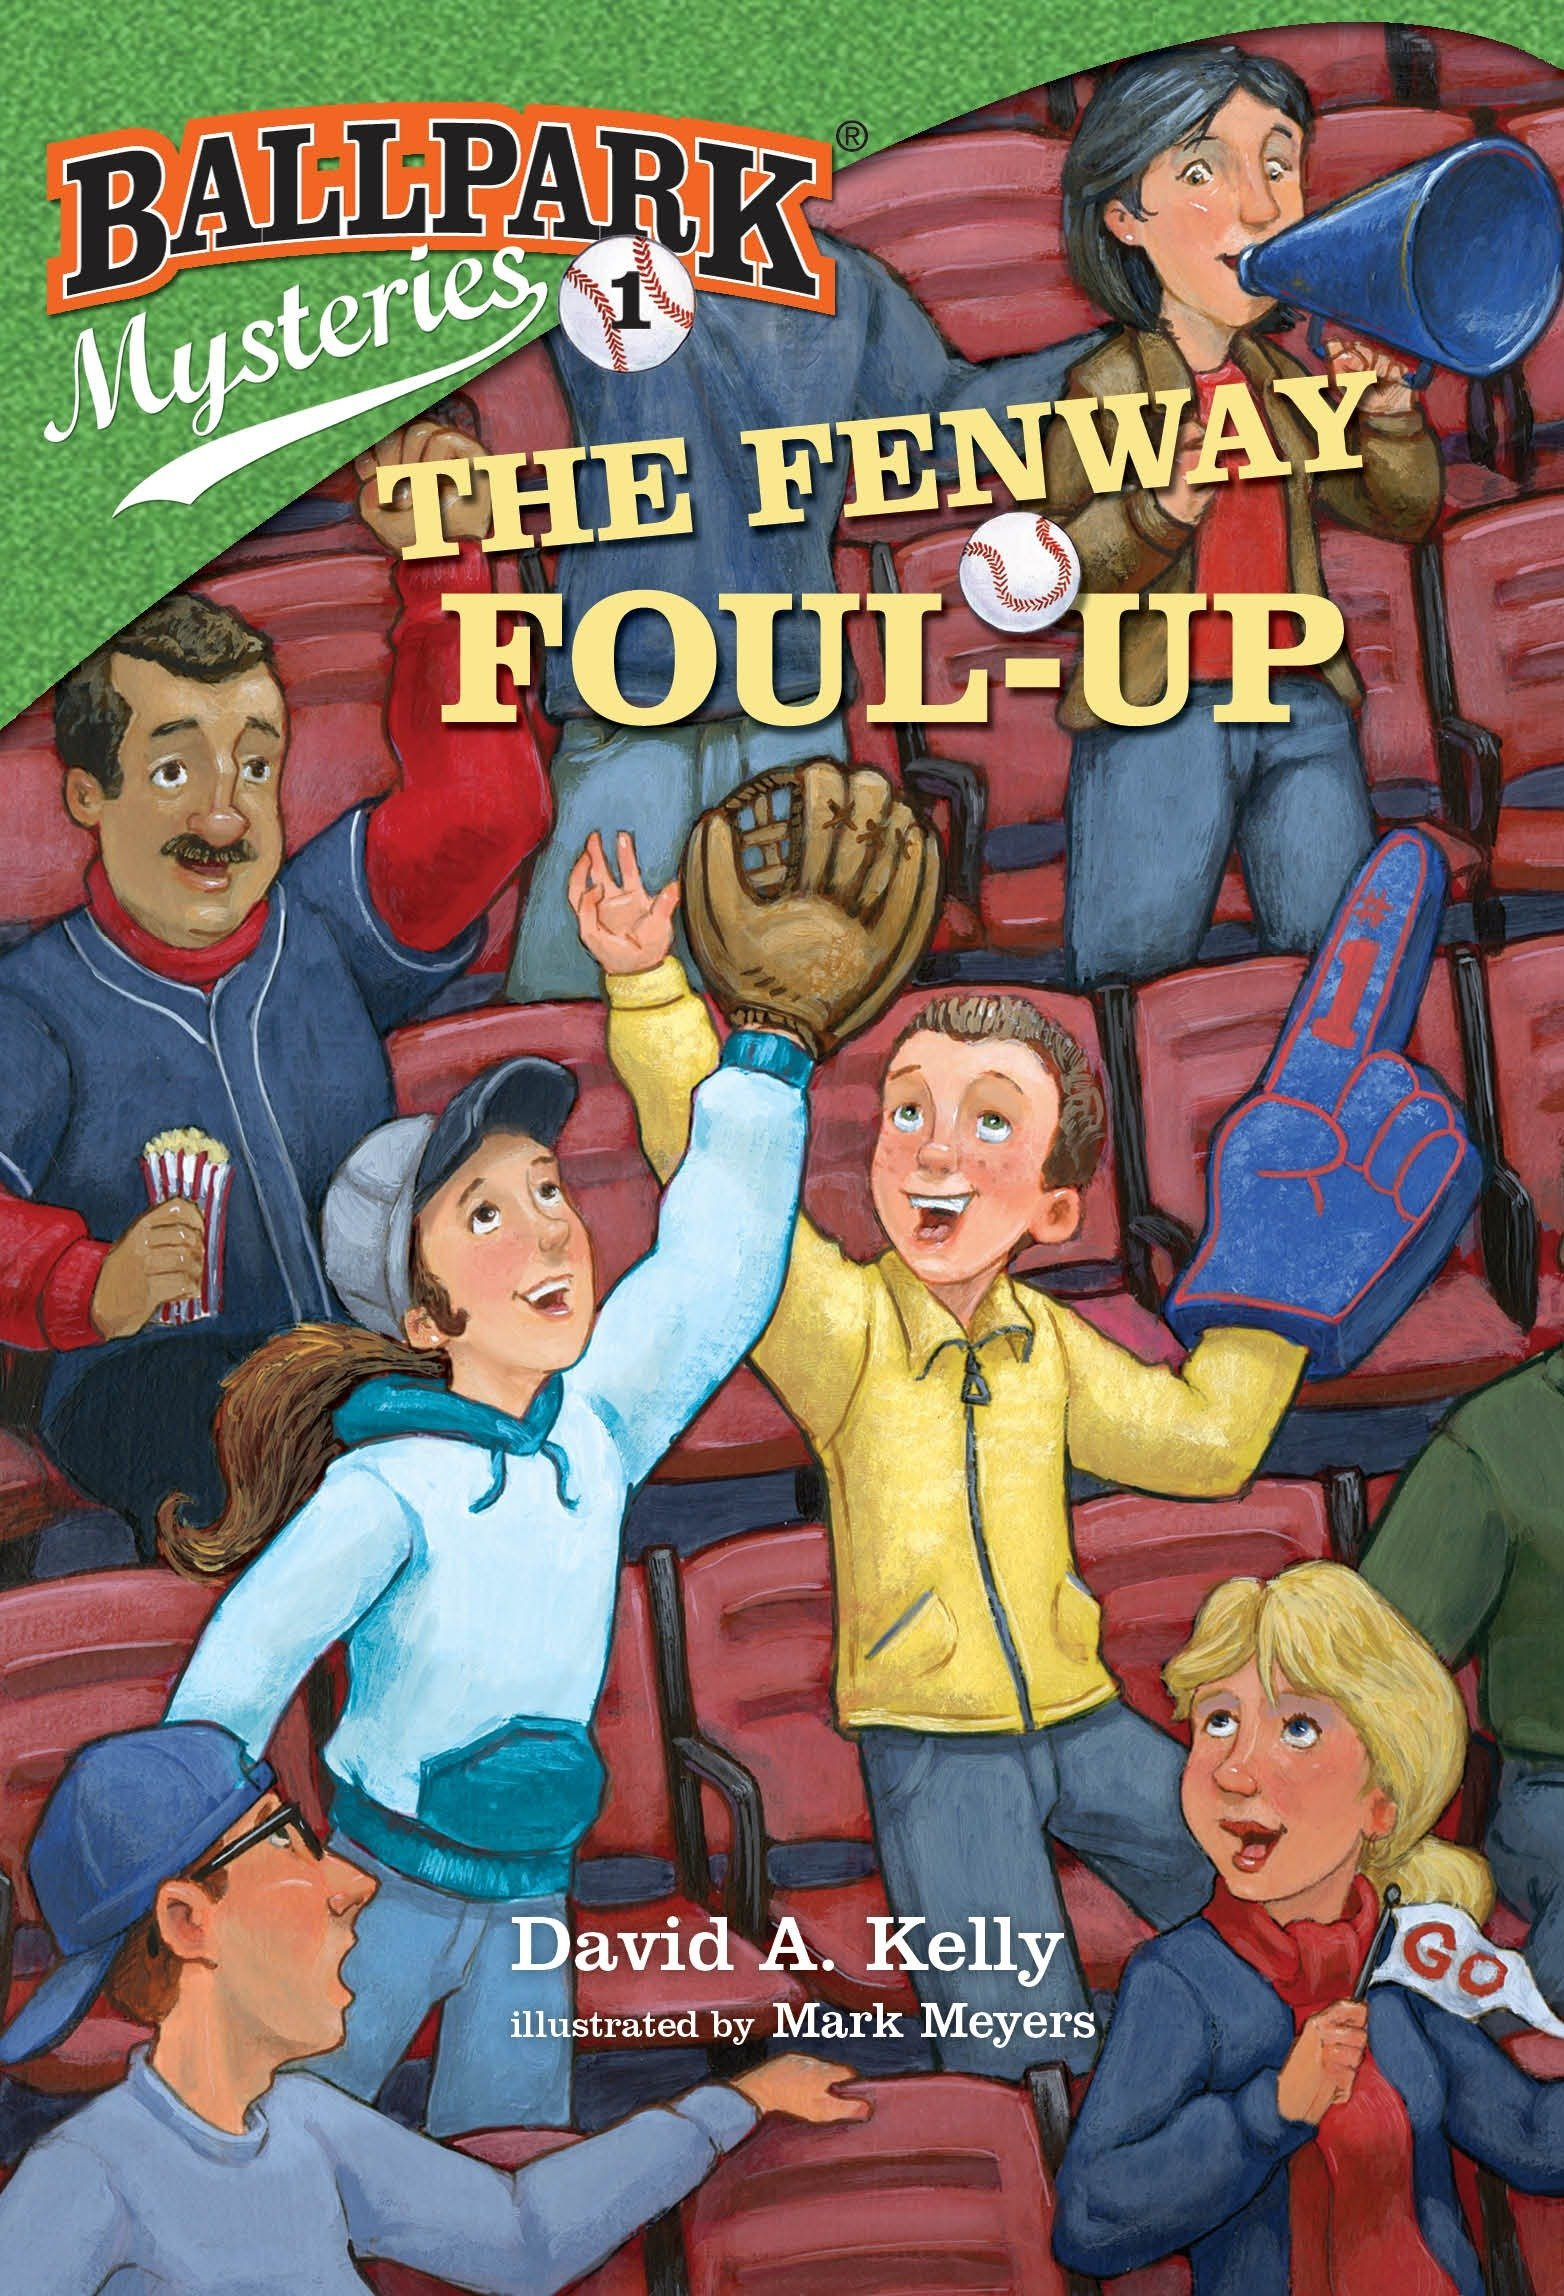 Ballpark Mysteries #1: The Fenway Foul-up pdf